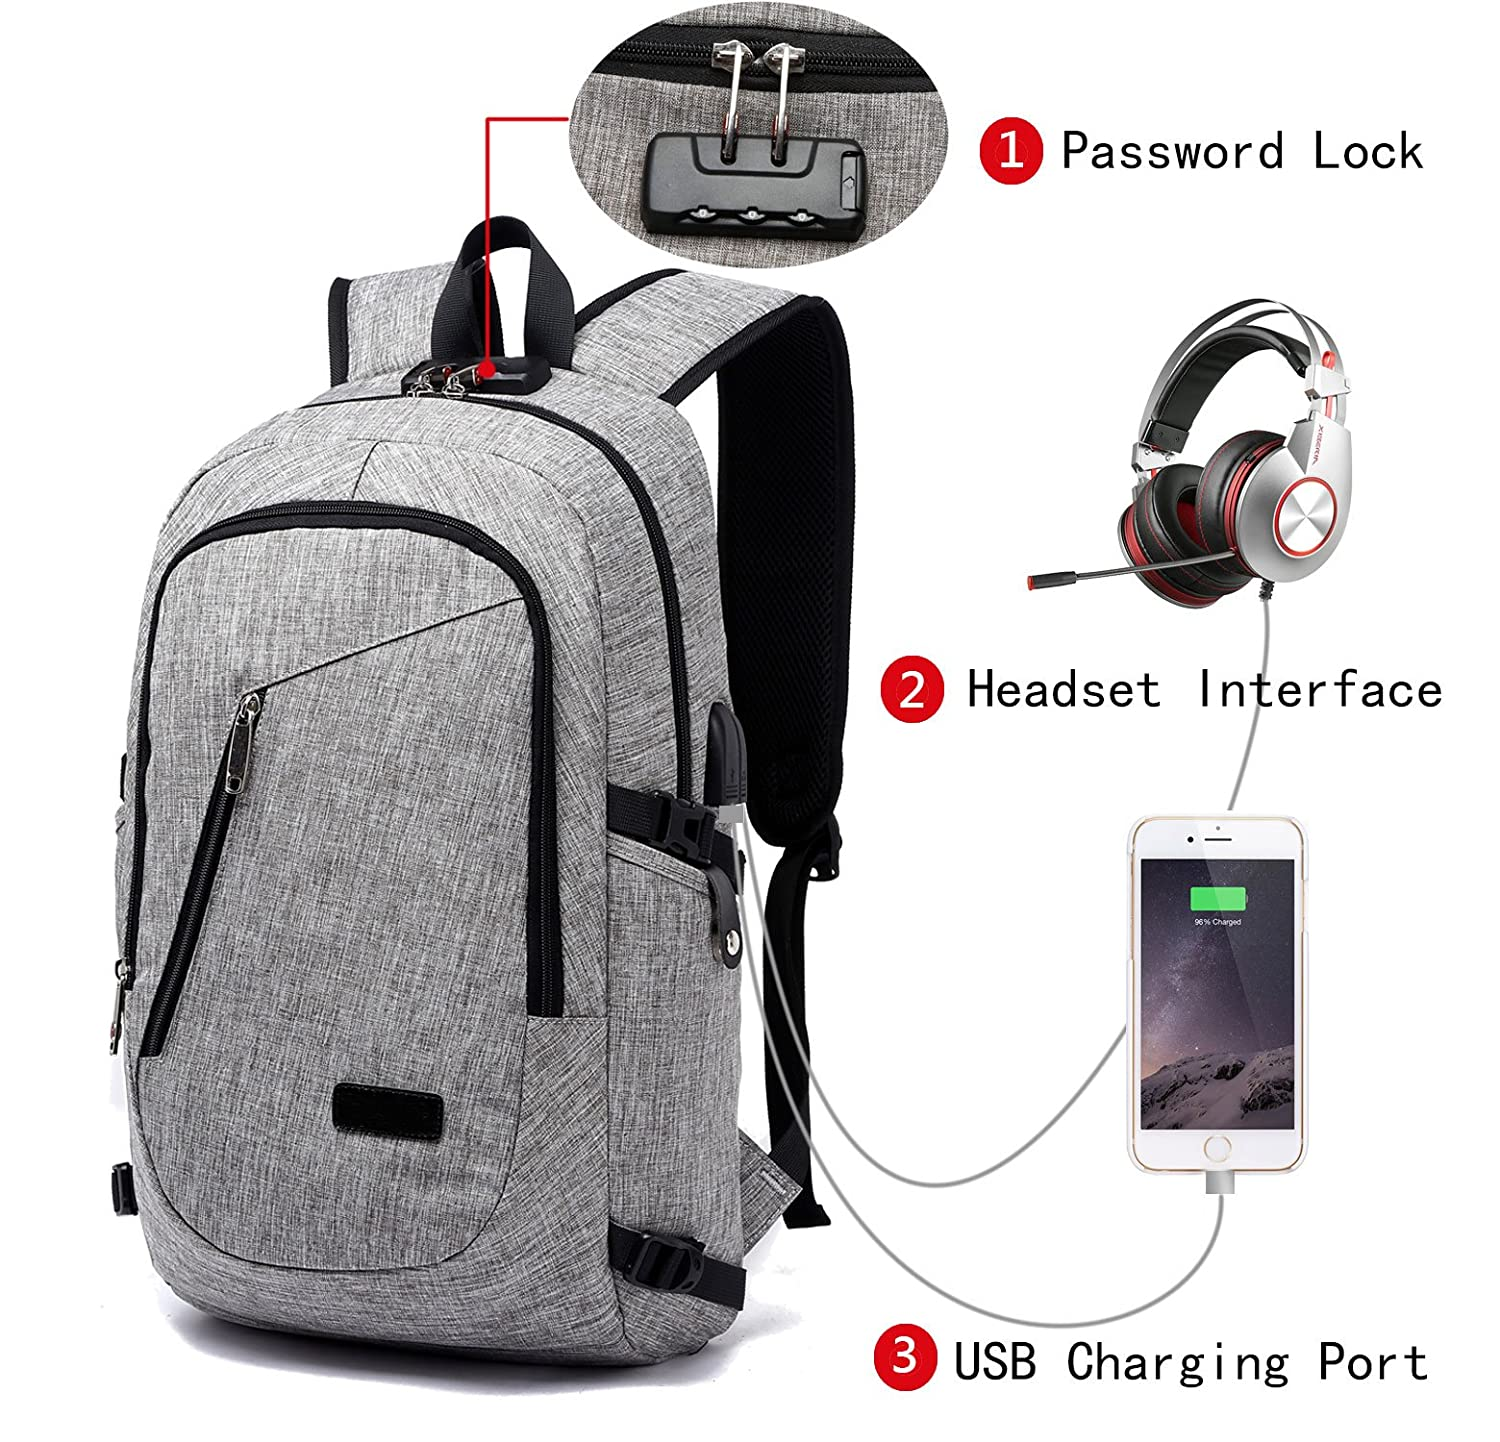 Backpack With Charger And Lock- Fenix Toulouse Handball 6b4af567f46e7